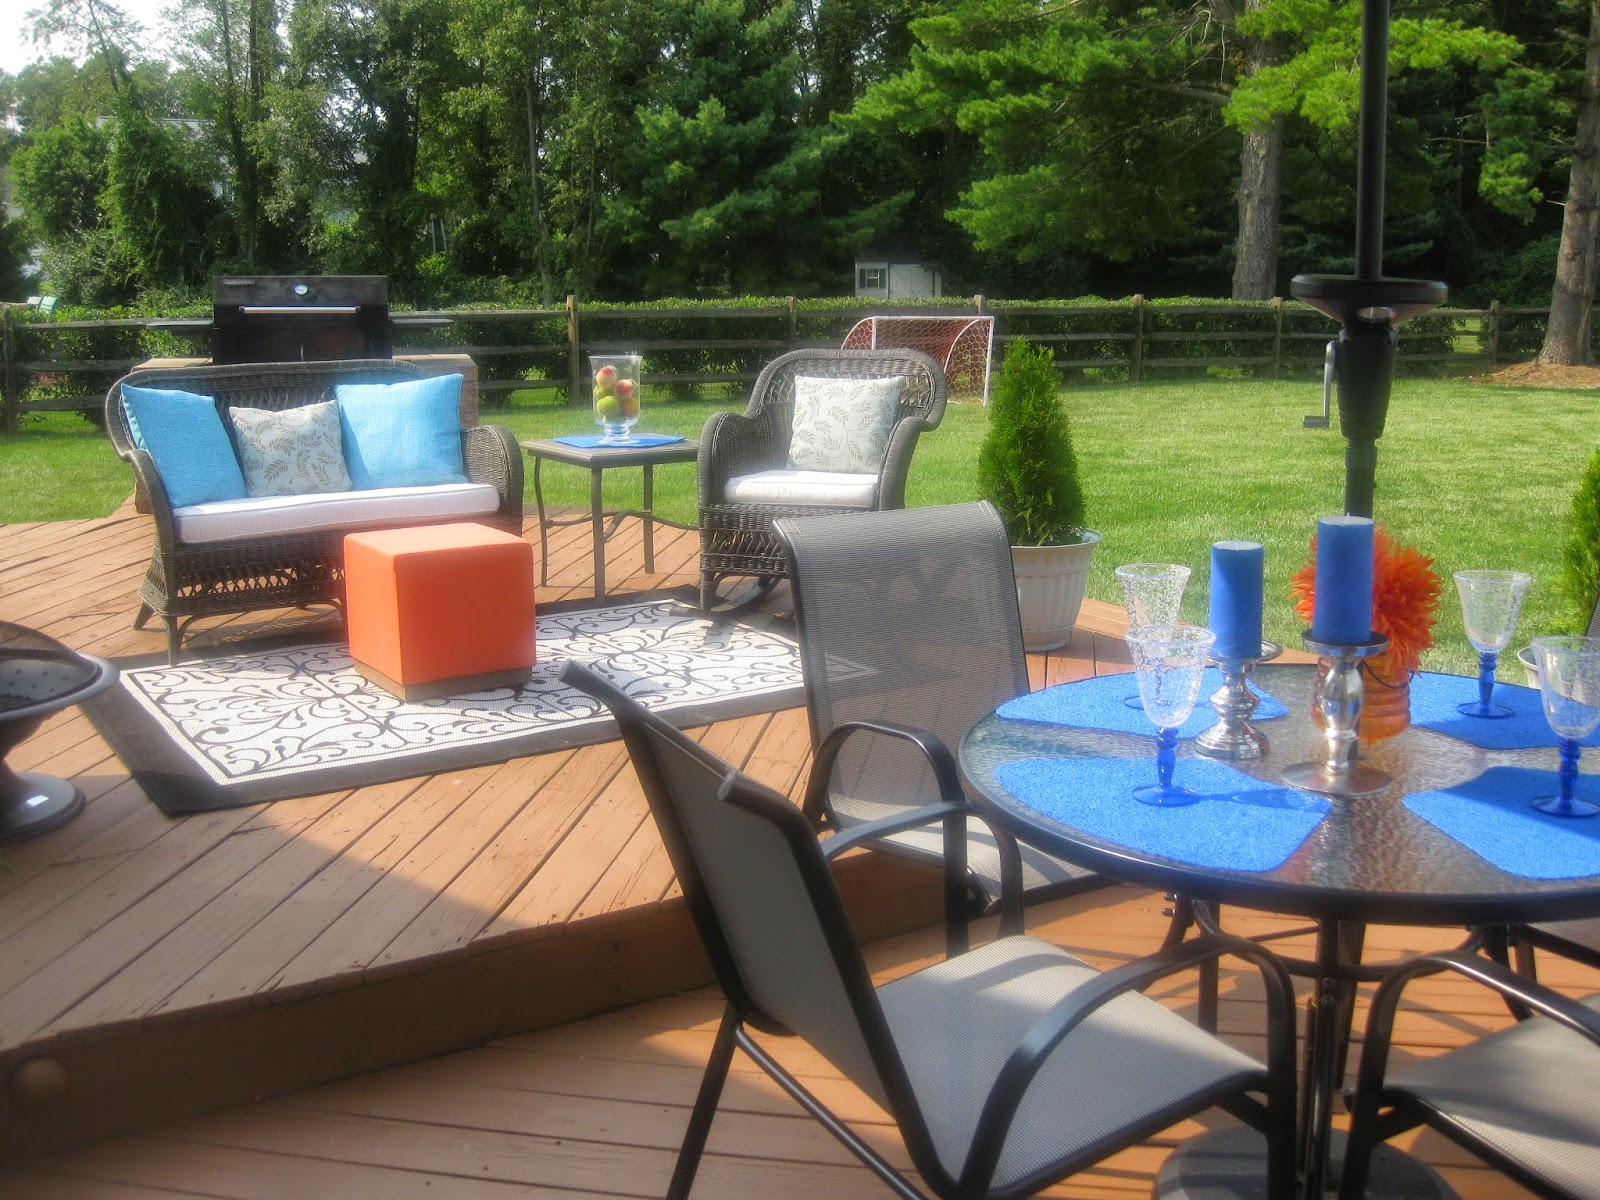 Patio/deck furniture layout